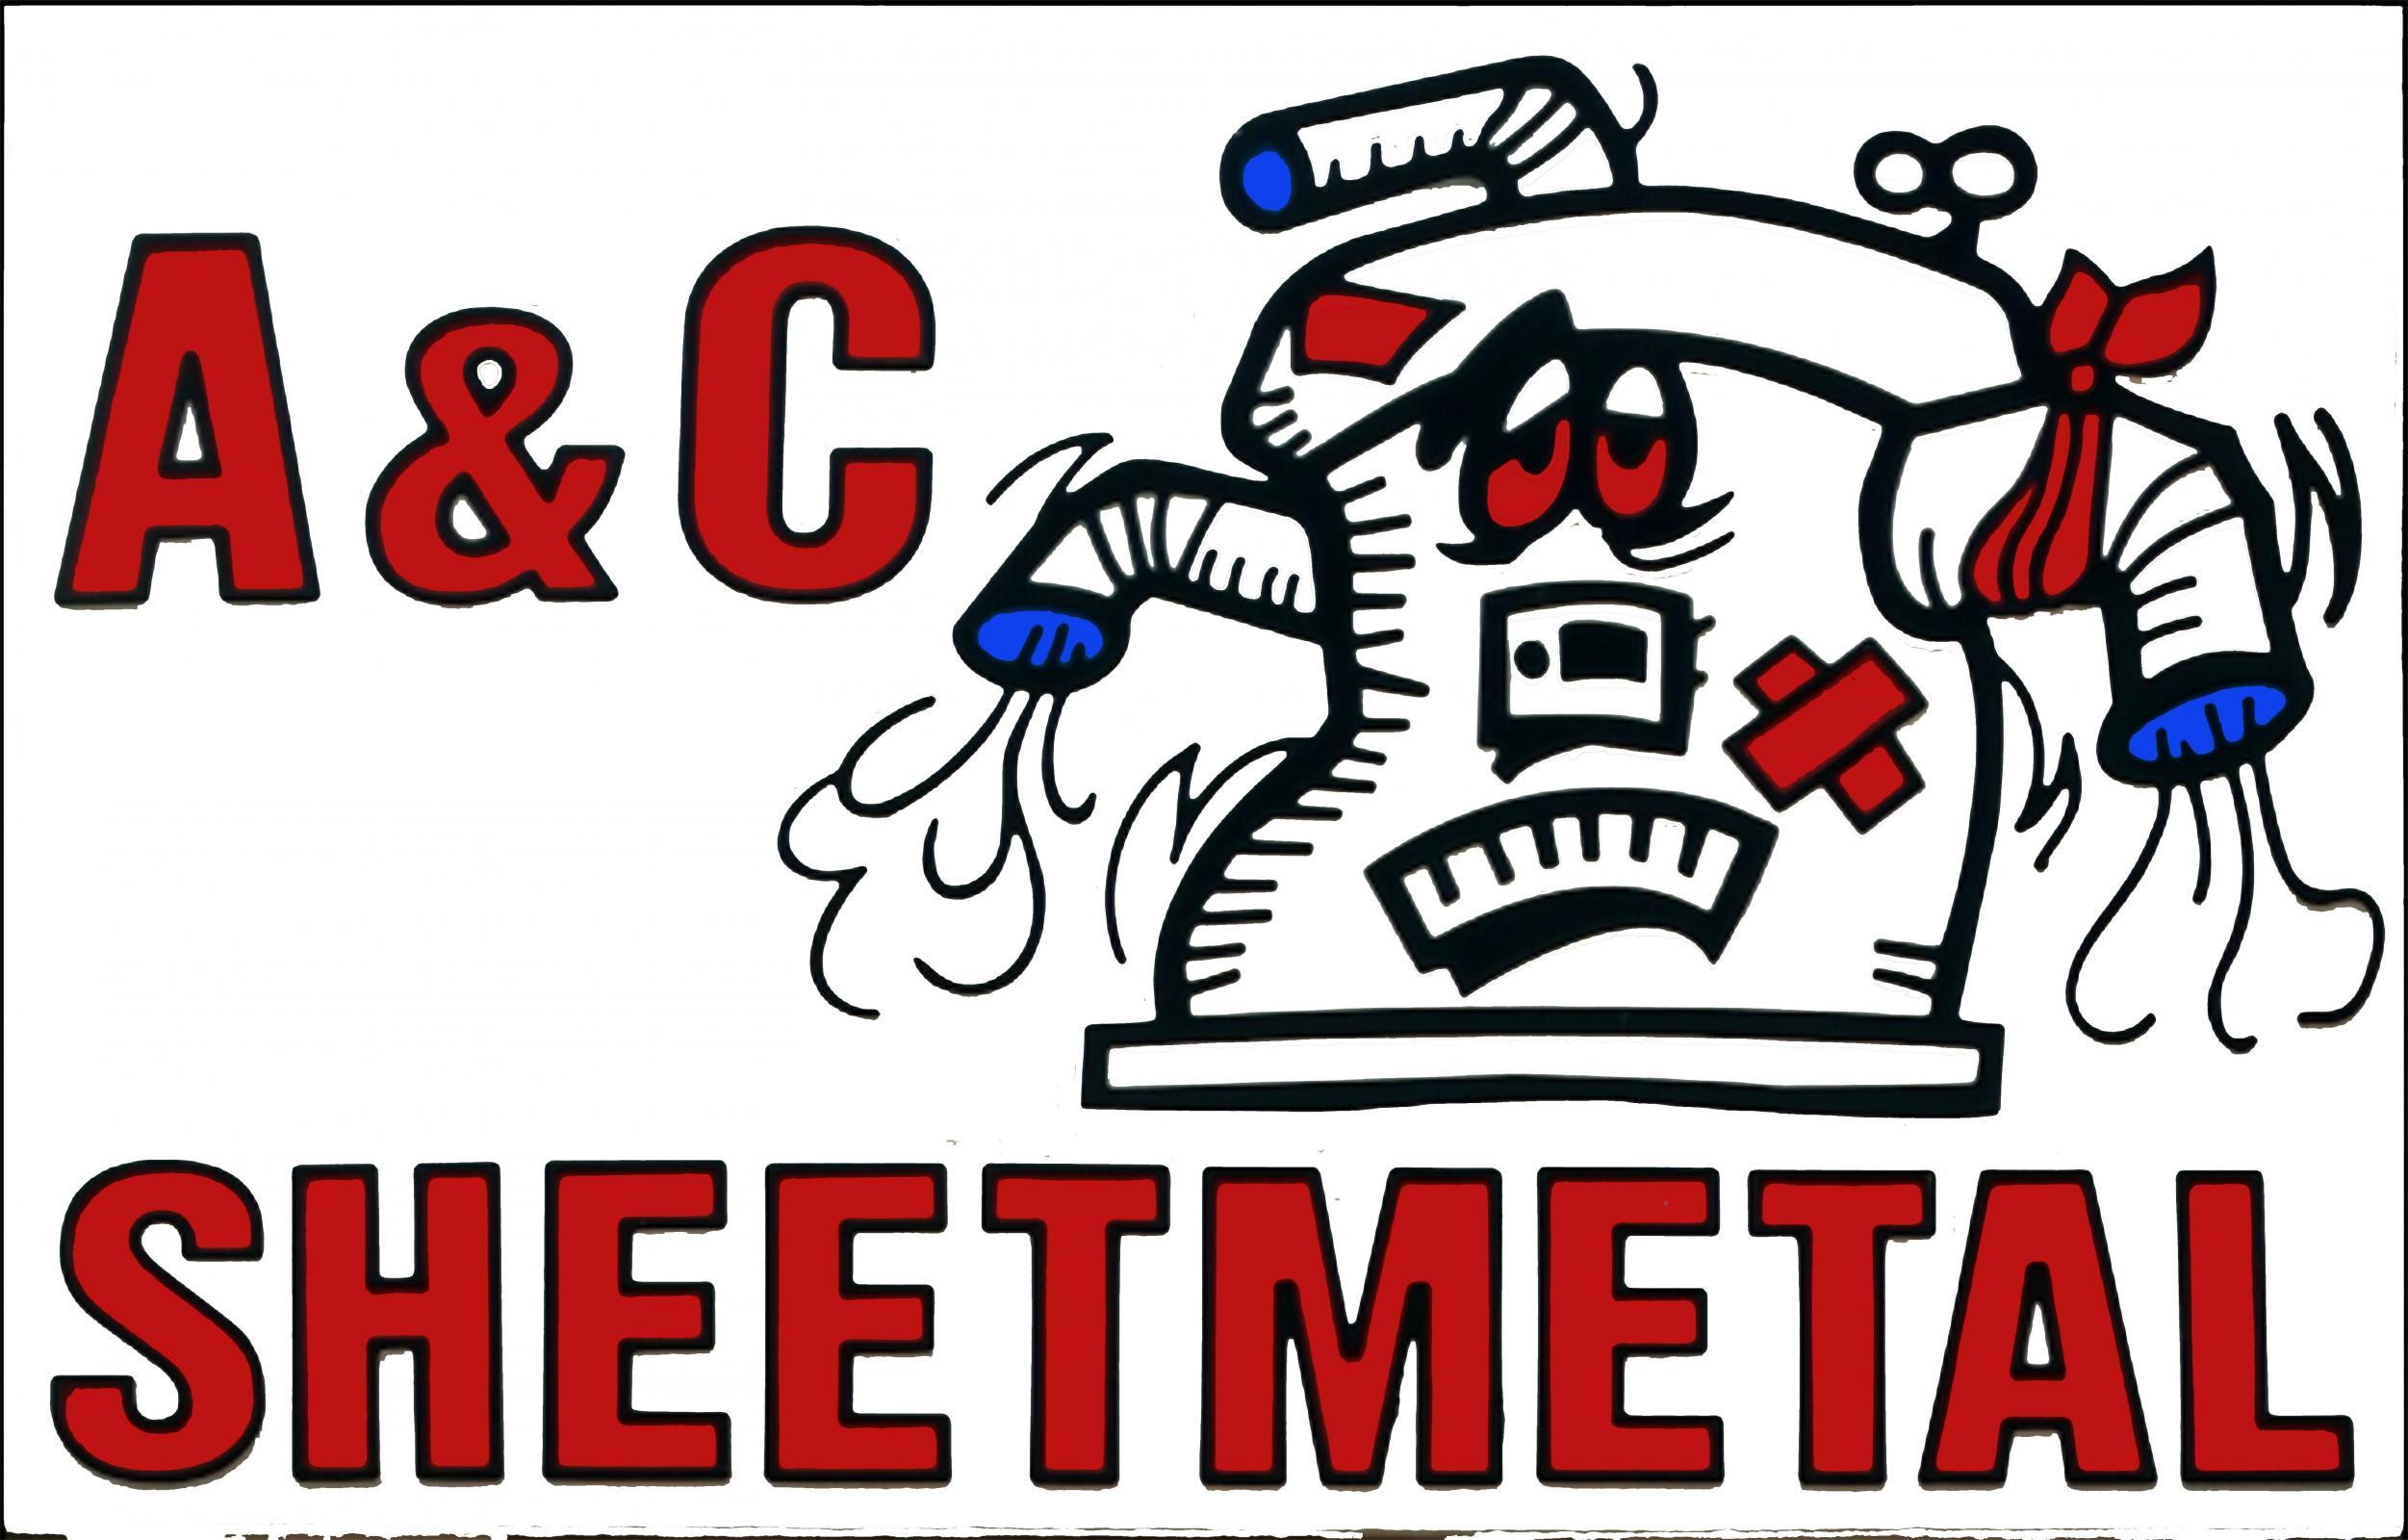 A&C Sheet Metal Slide Image